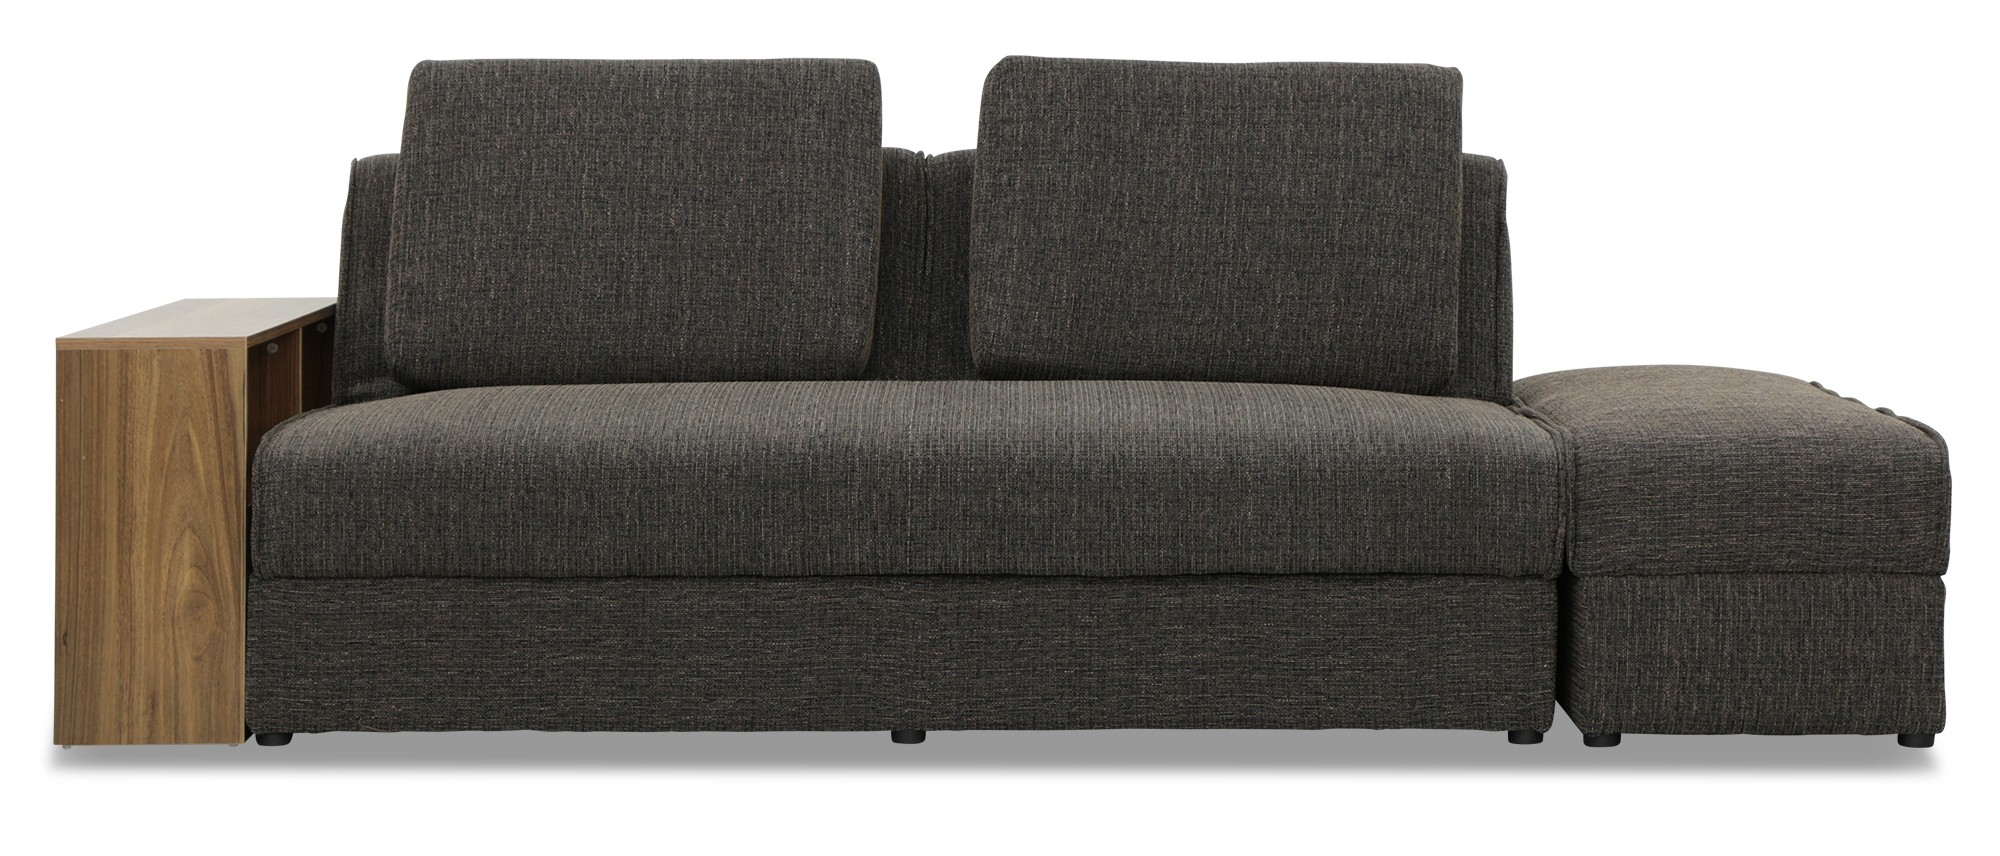 corbusier le couch couches style oat eei wool sofa